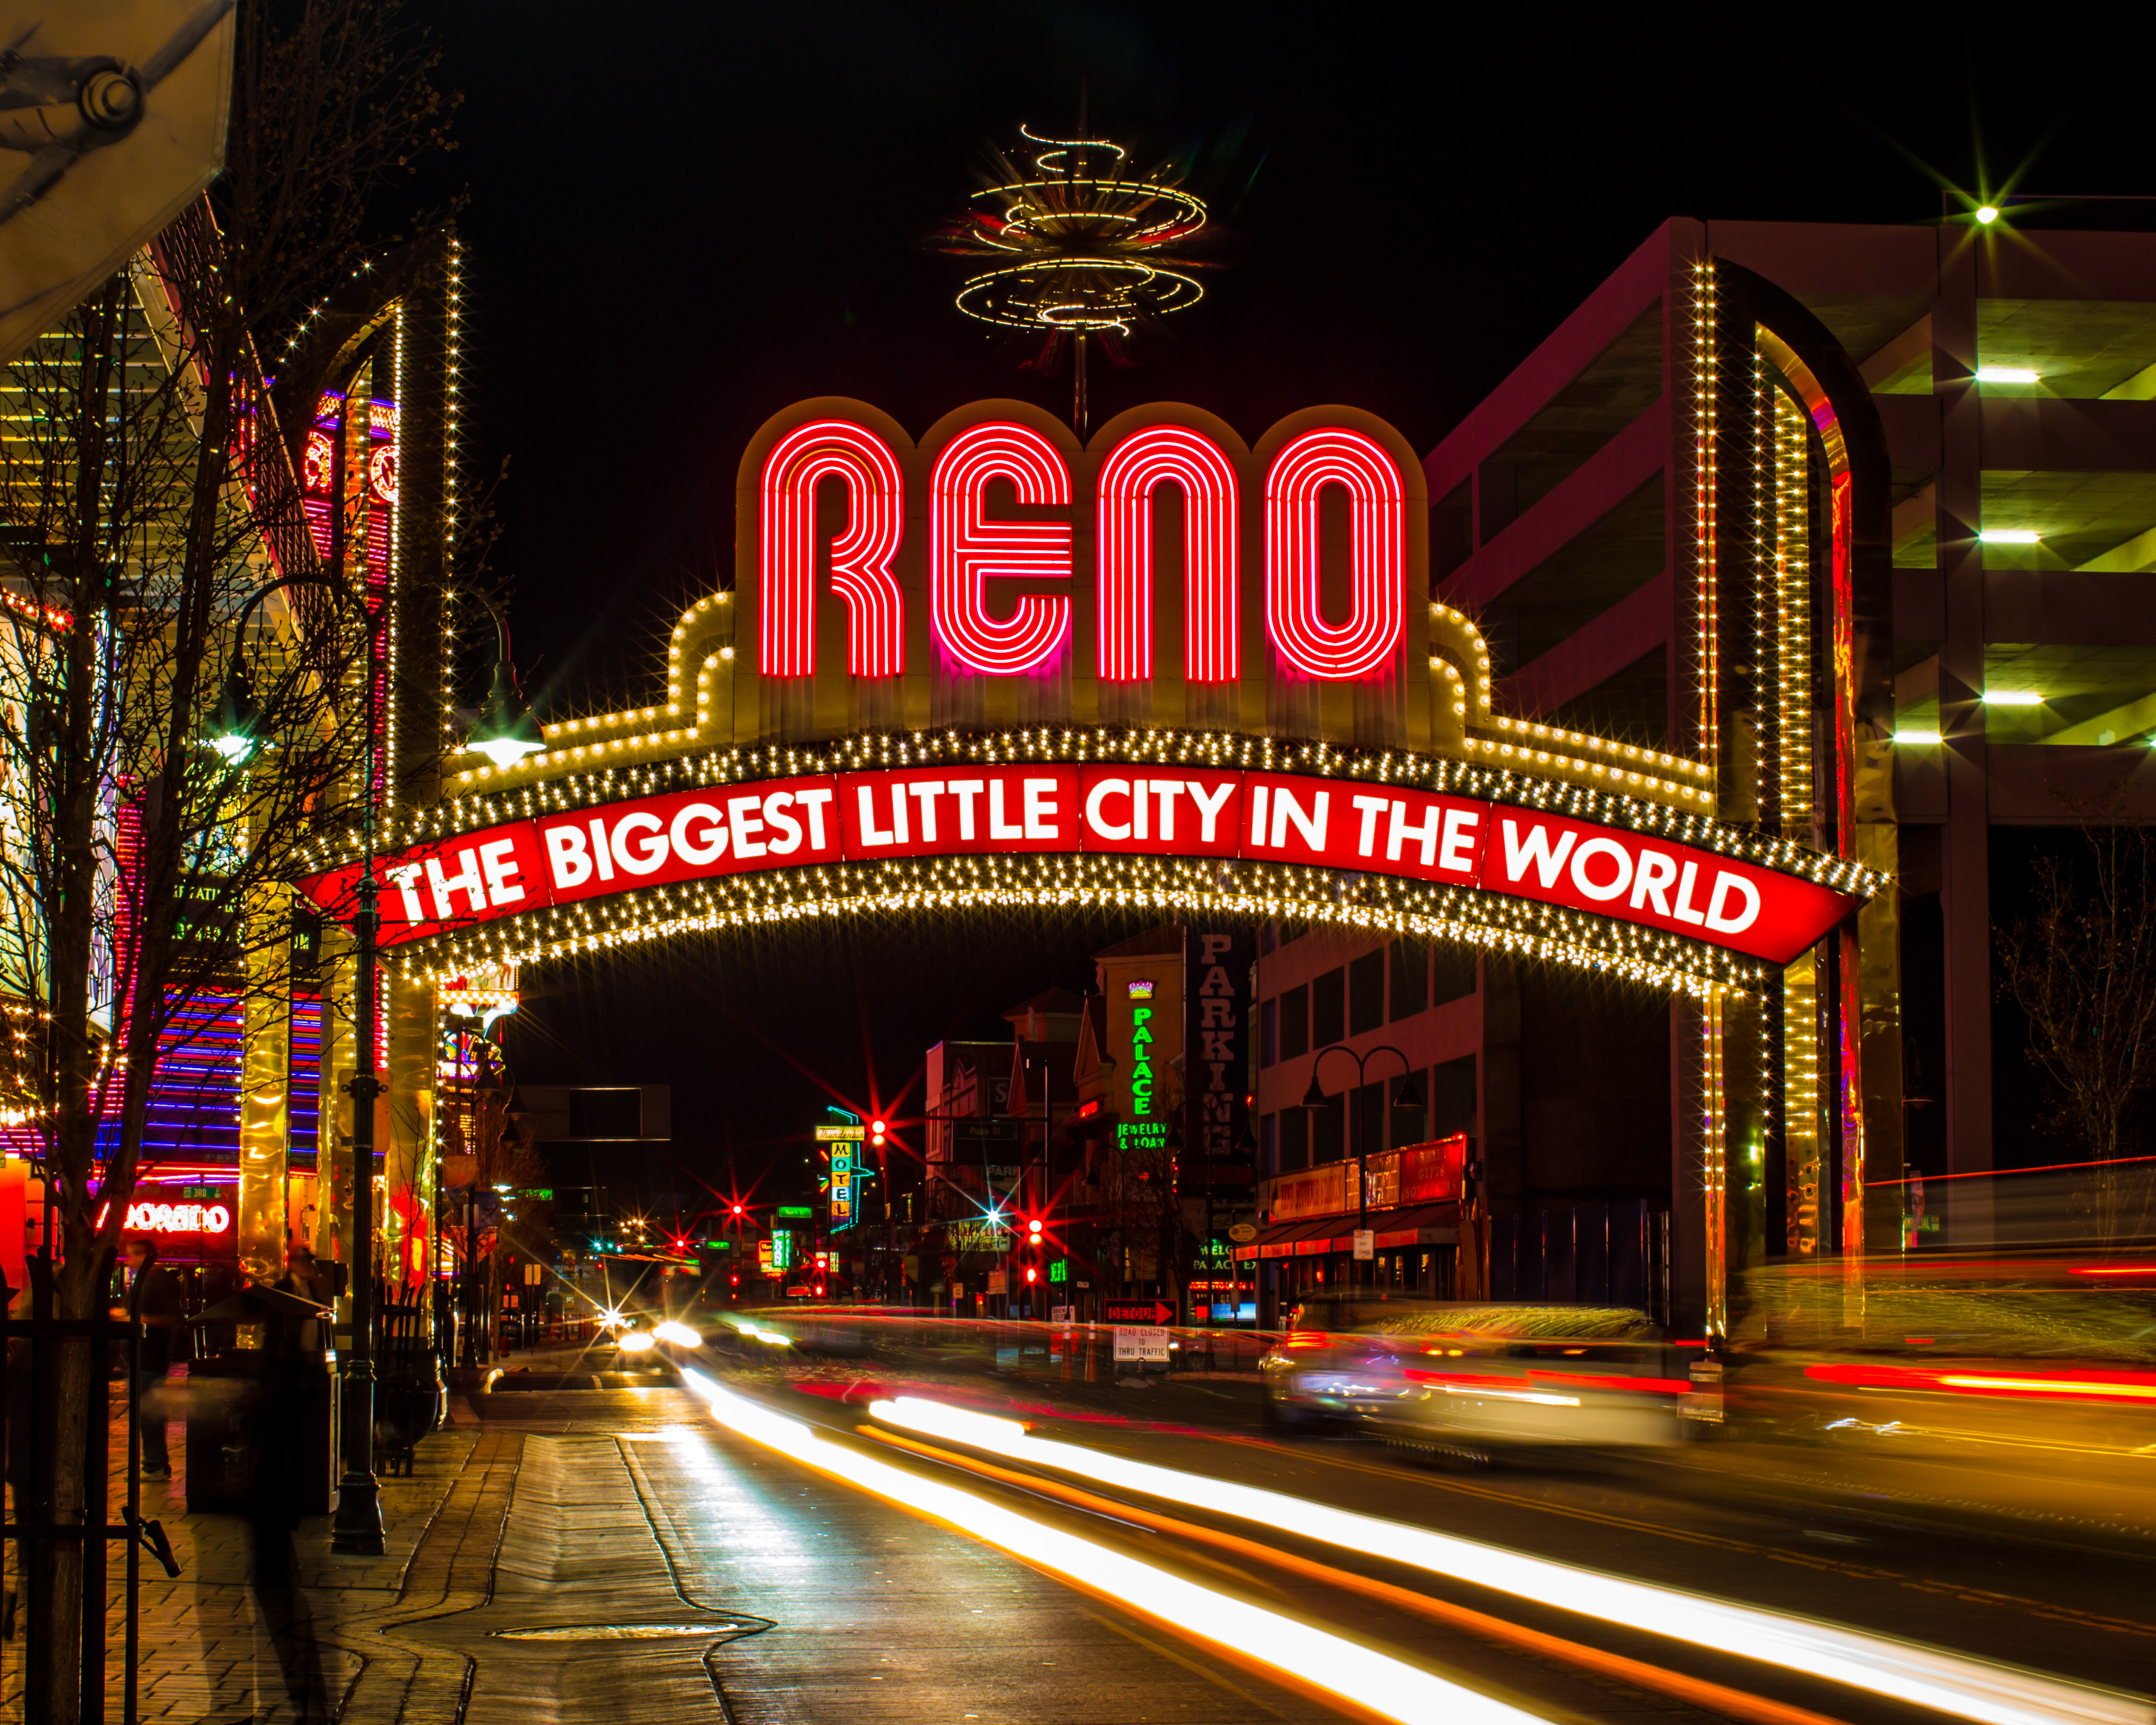 15 Reasons To Move To Reno The Biggest Little City In The